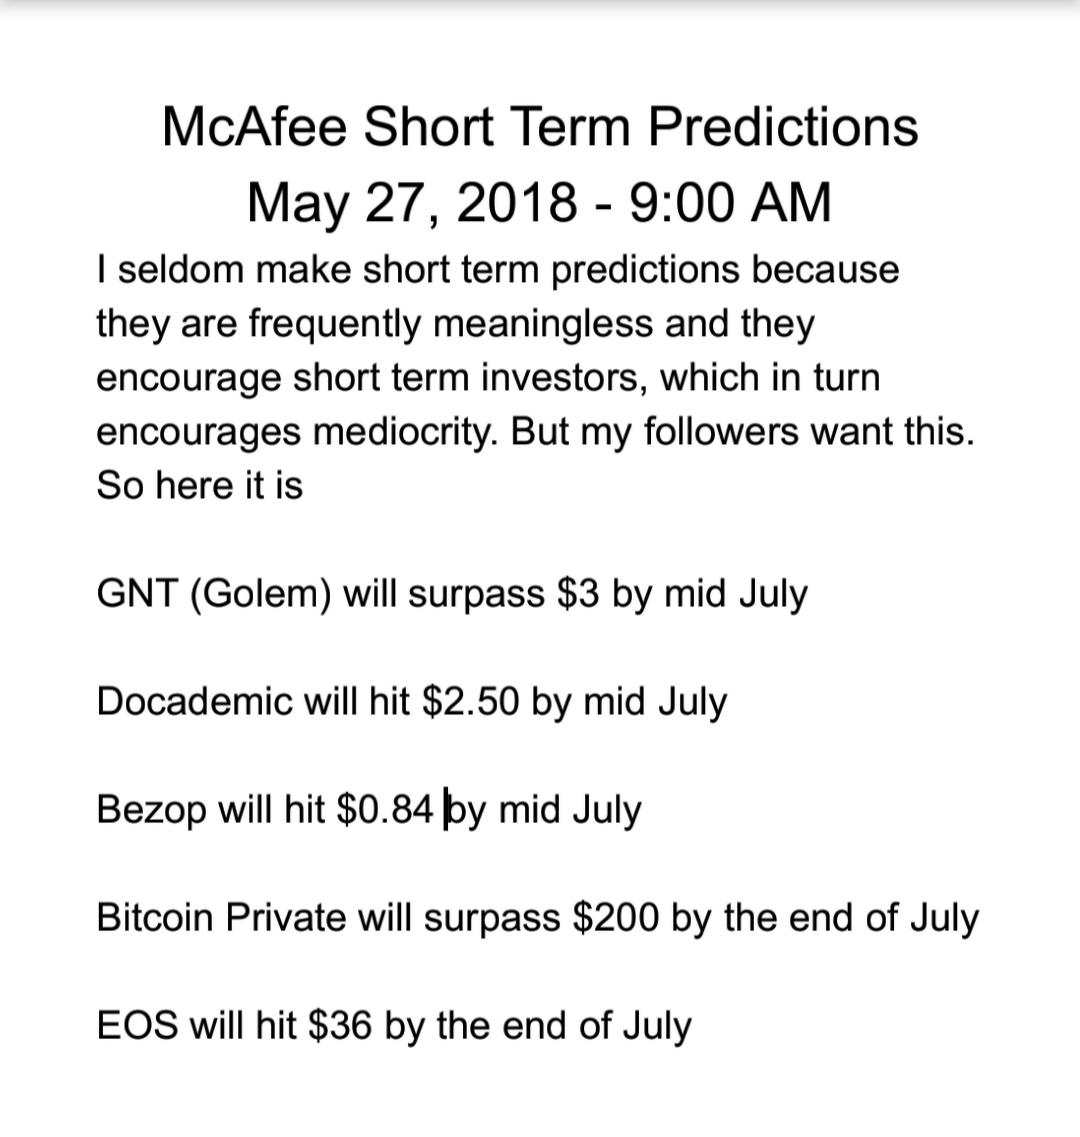 John McAfee Short Term predictions